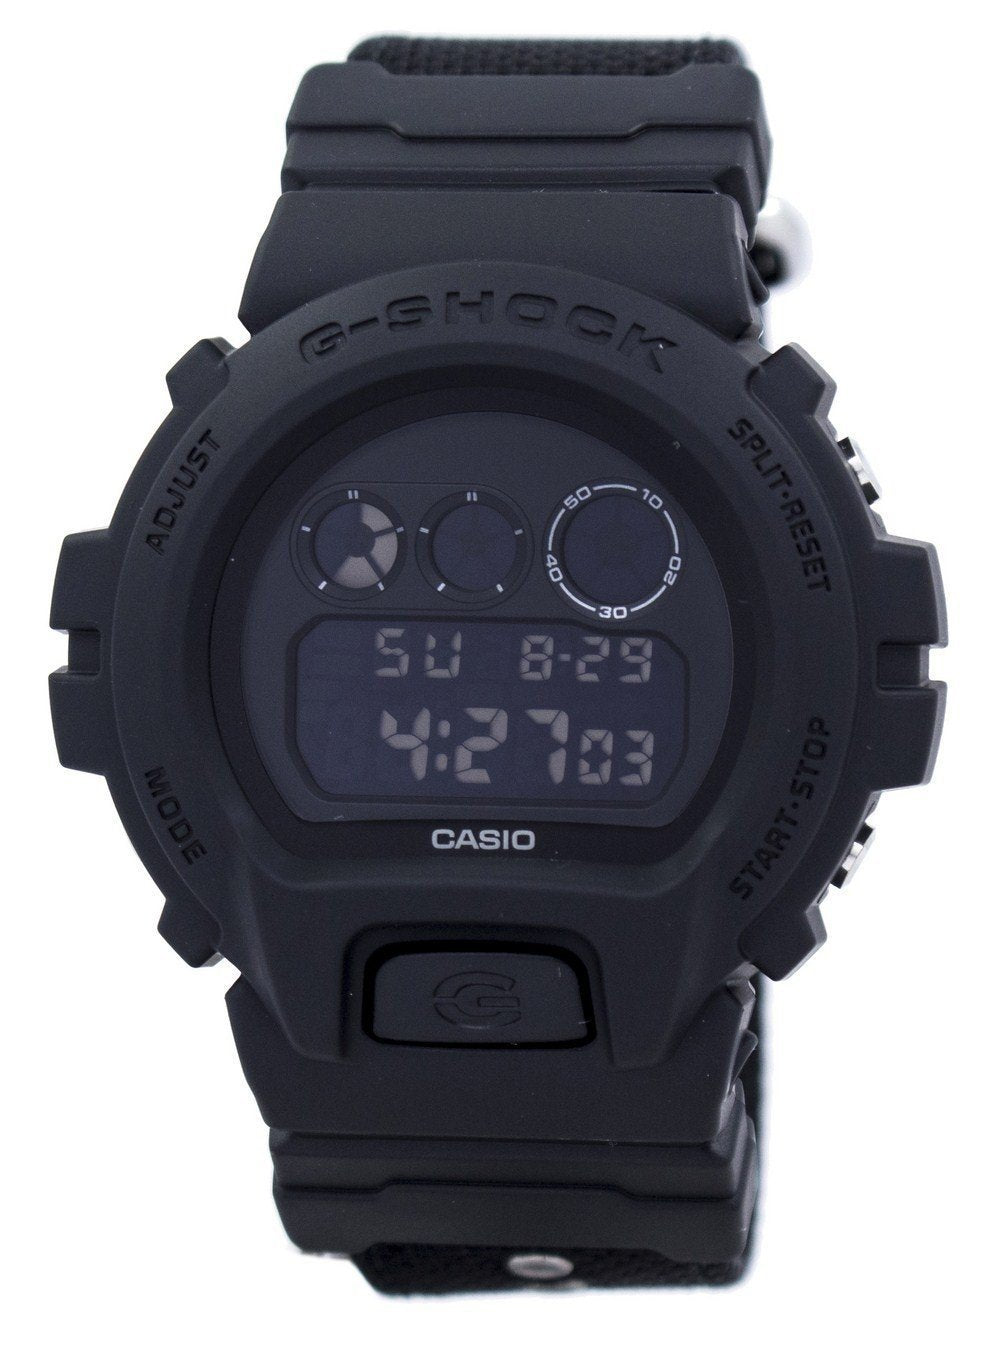 Casio G-Shock Alarm Shock Resistant Digital DW-6900BBN-1 DW6900BBN-1 Men's Watch